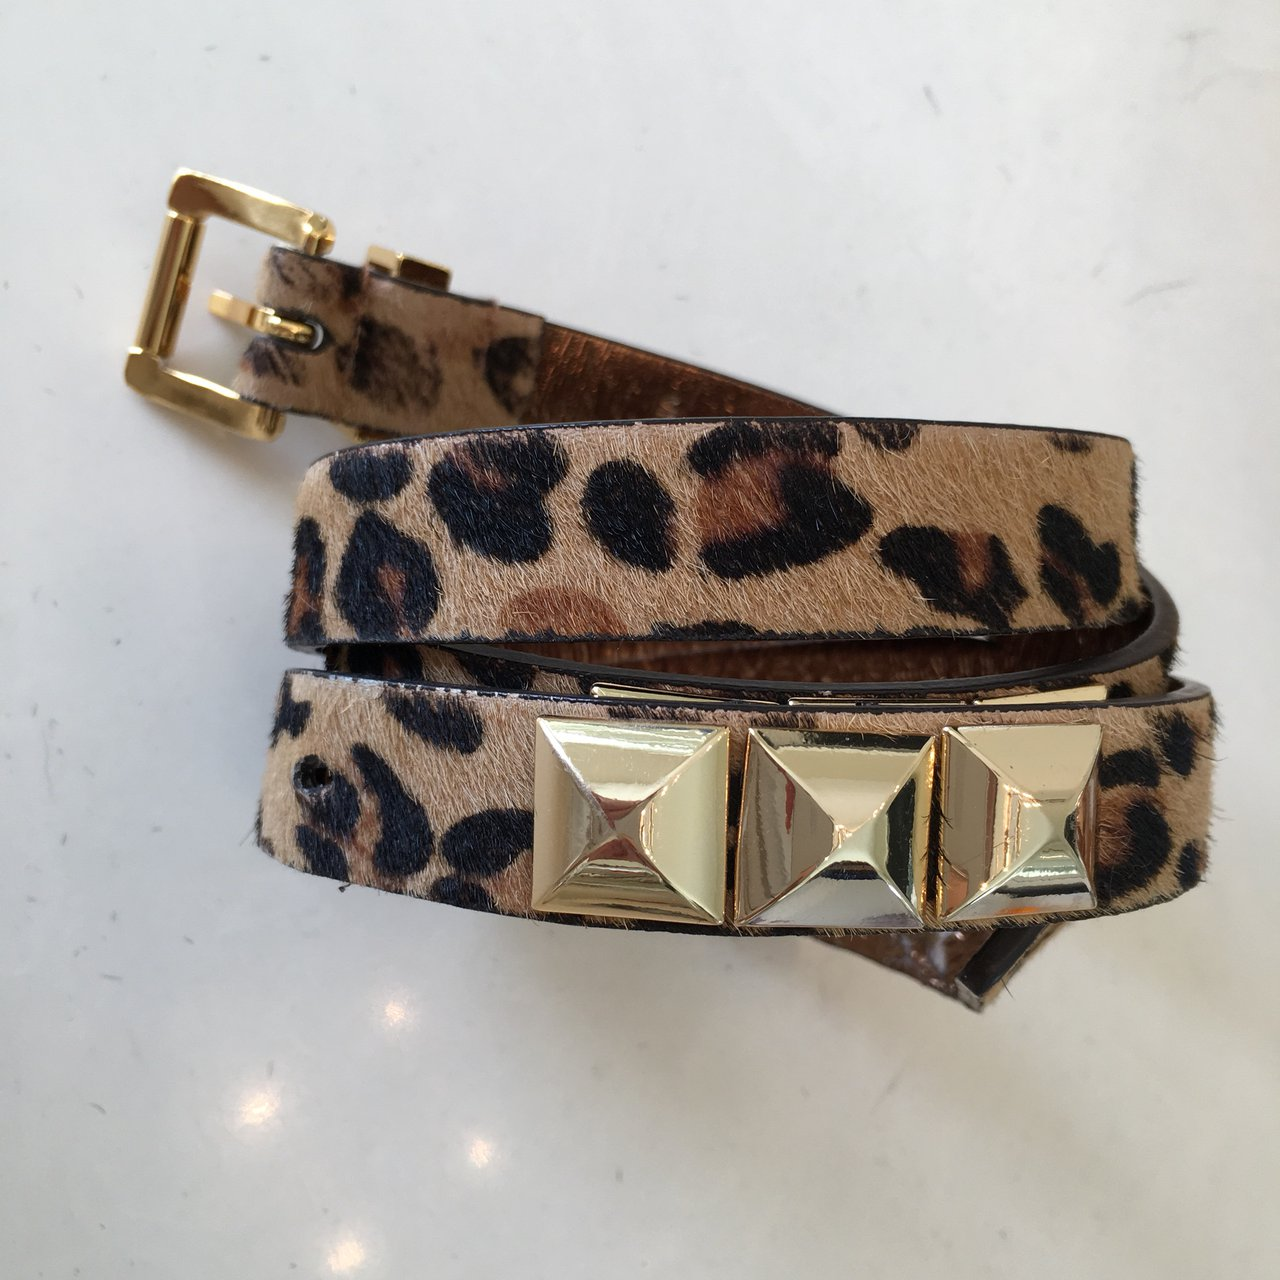 8f24abe598fc04 ... cheap frommyclosettoyou. last year. coppell united states. michael kors  leopard print belt b8e02